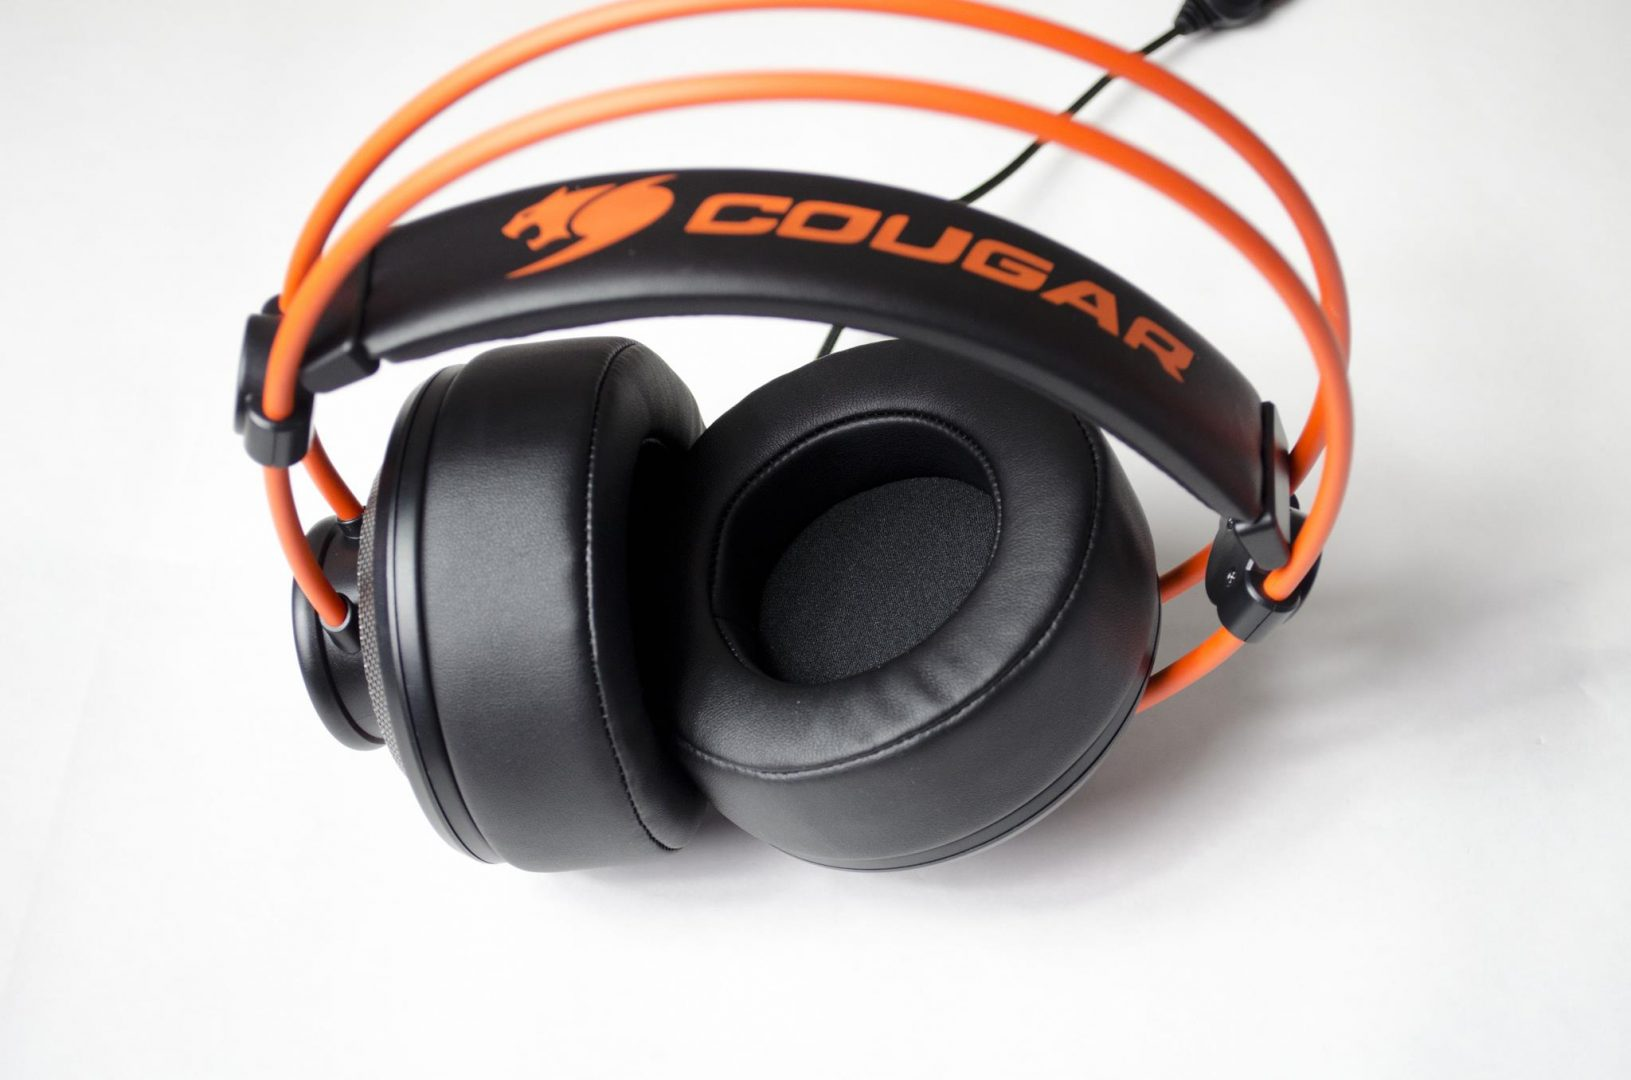 cougar immera headset review_5